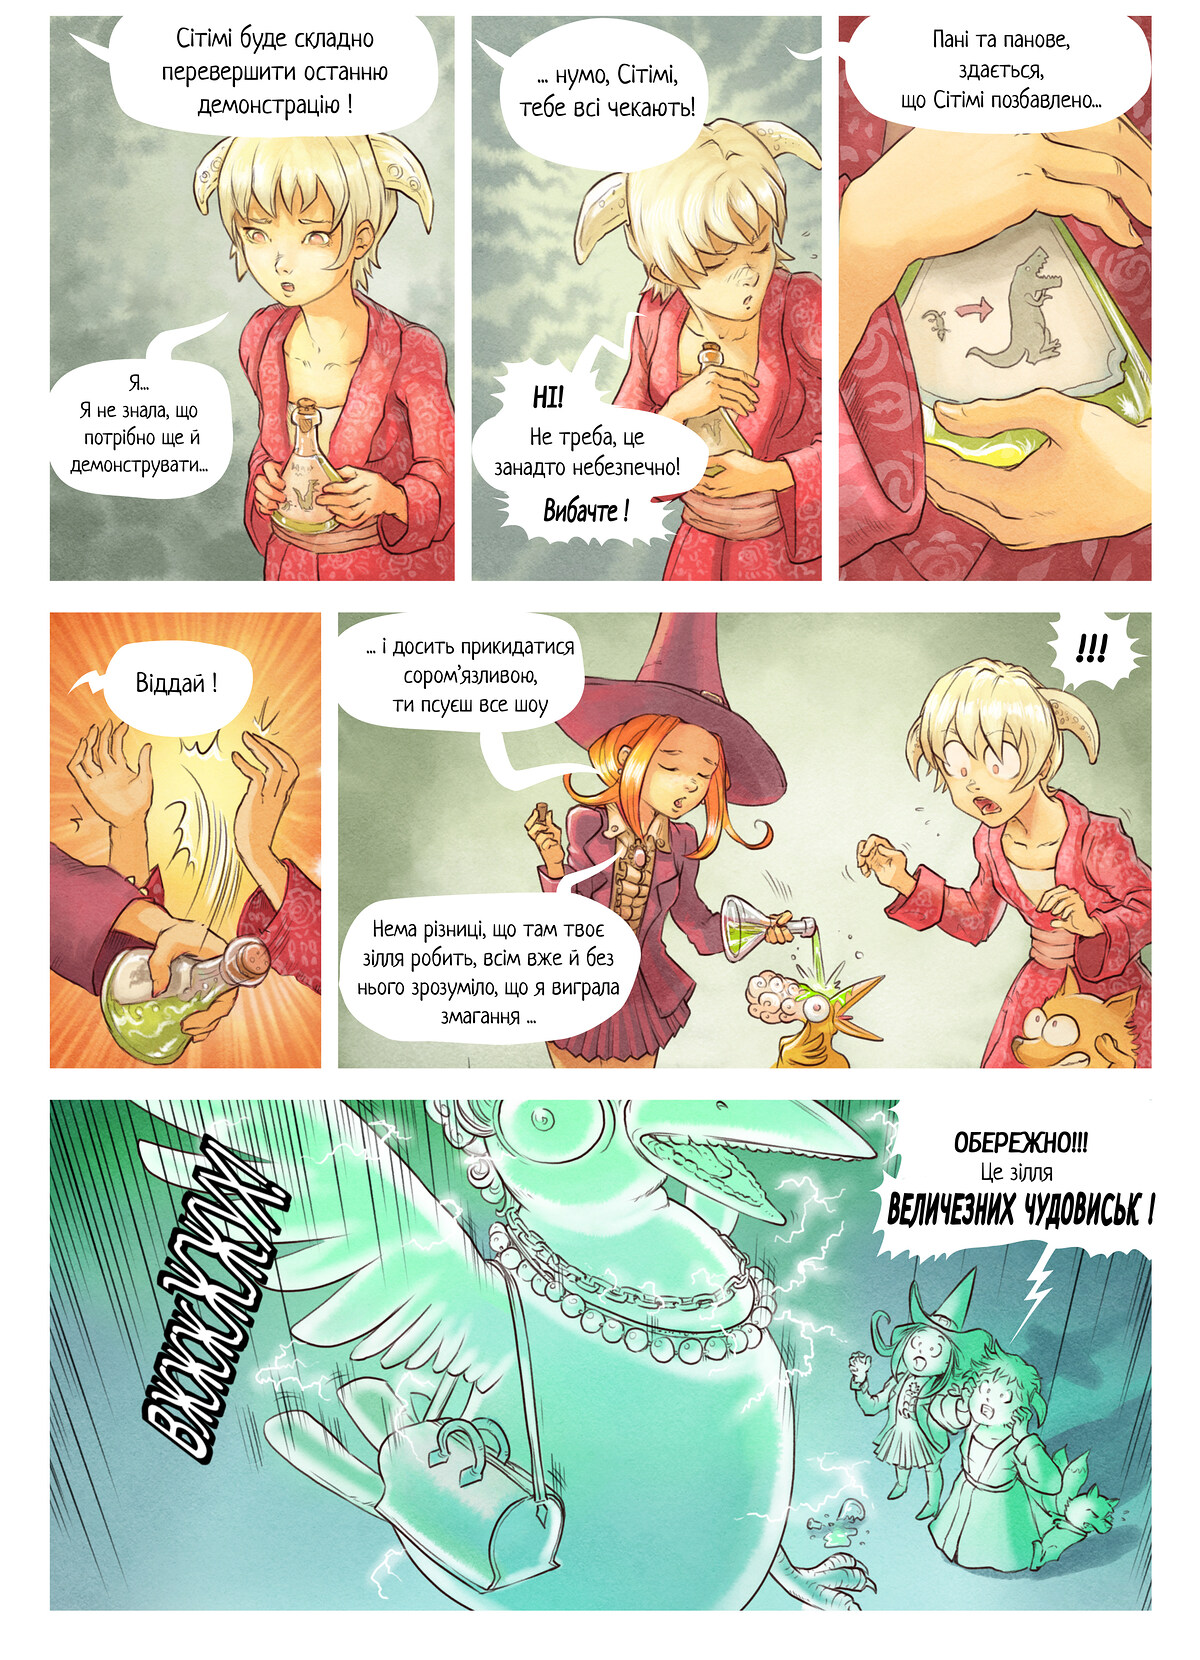 A webcomic page of Pepper&Carrot, епізод 6 [uk], стор. 6